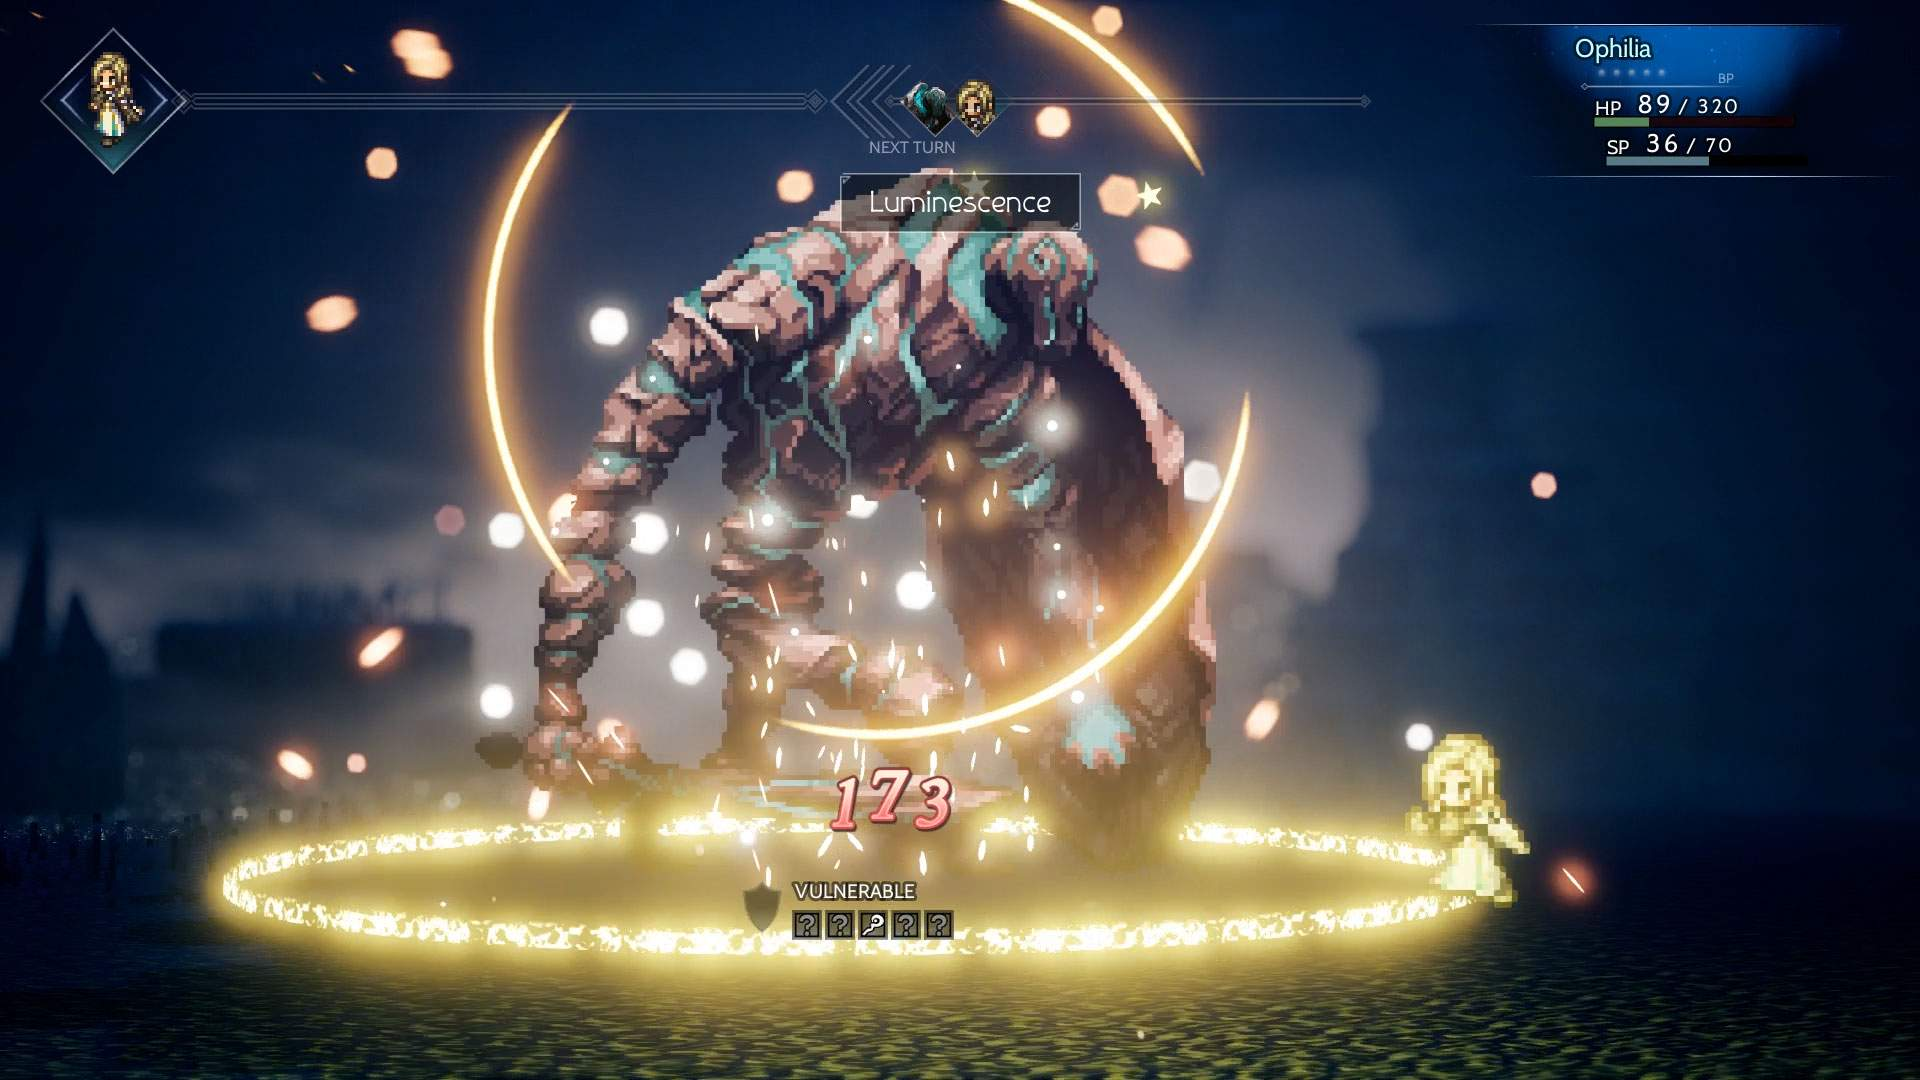 In game battle screenshot showing Ophilia casting an attack on a large monster in dark environment